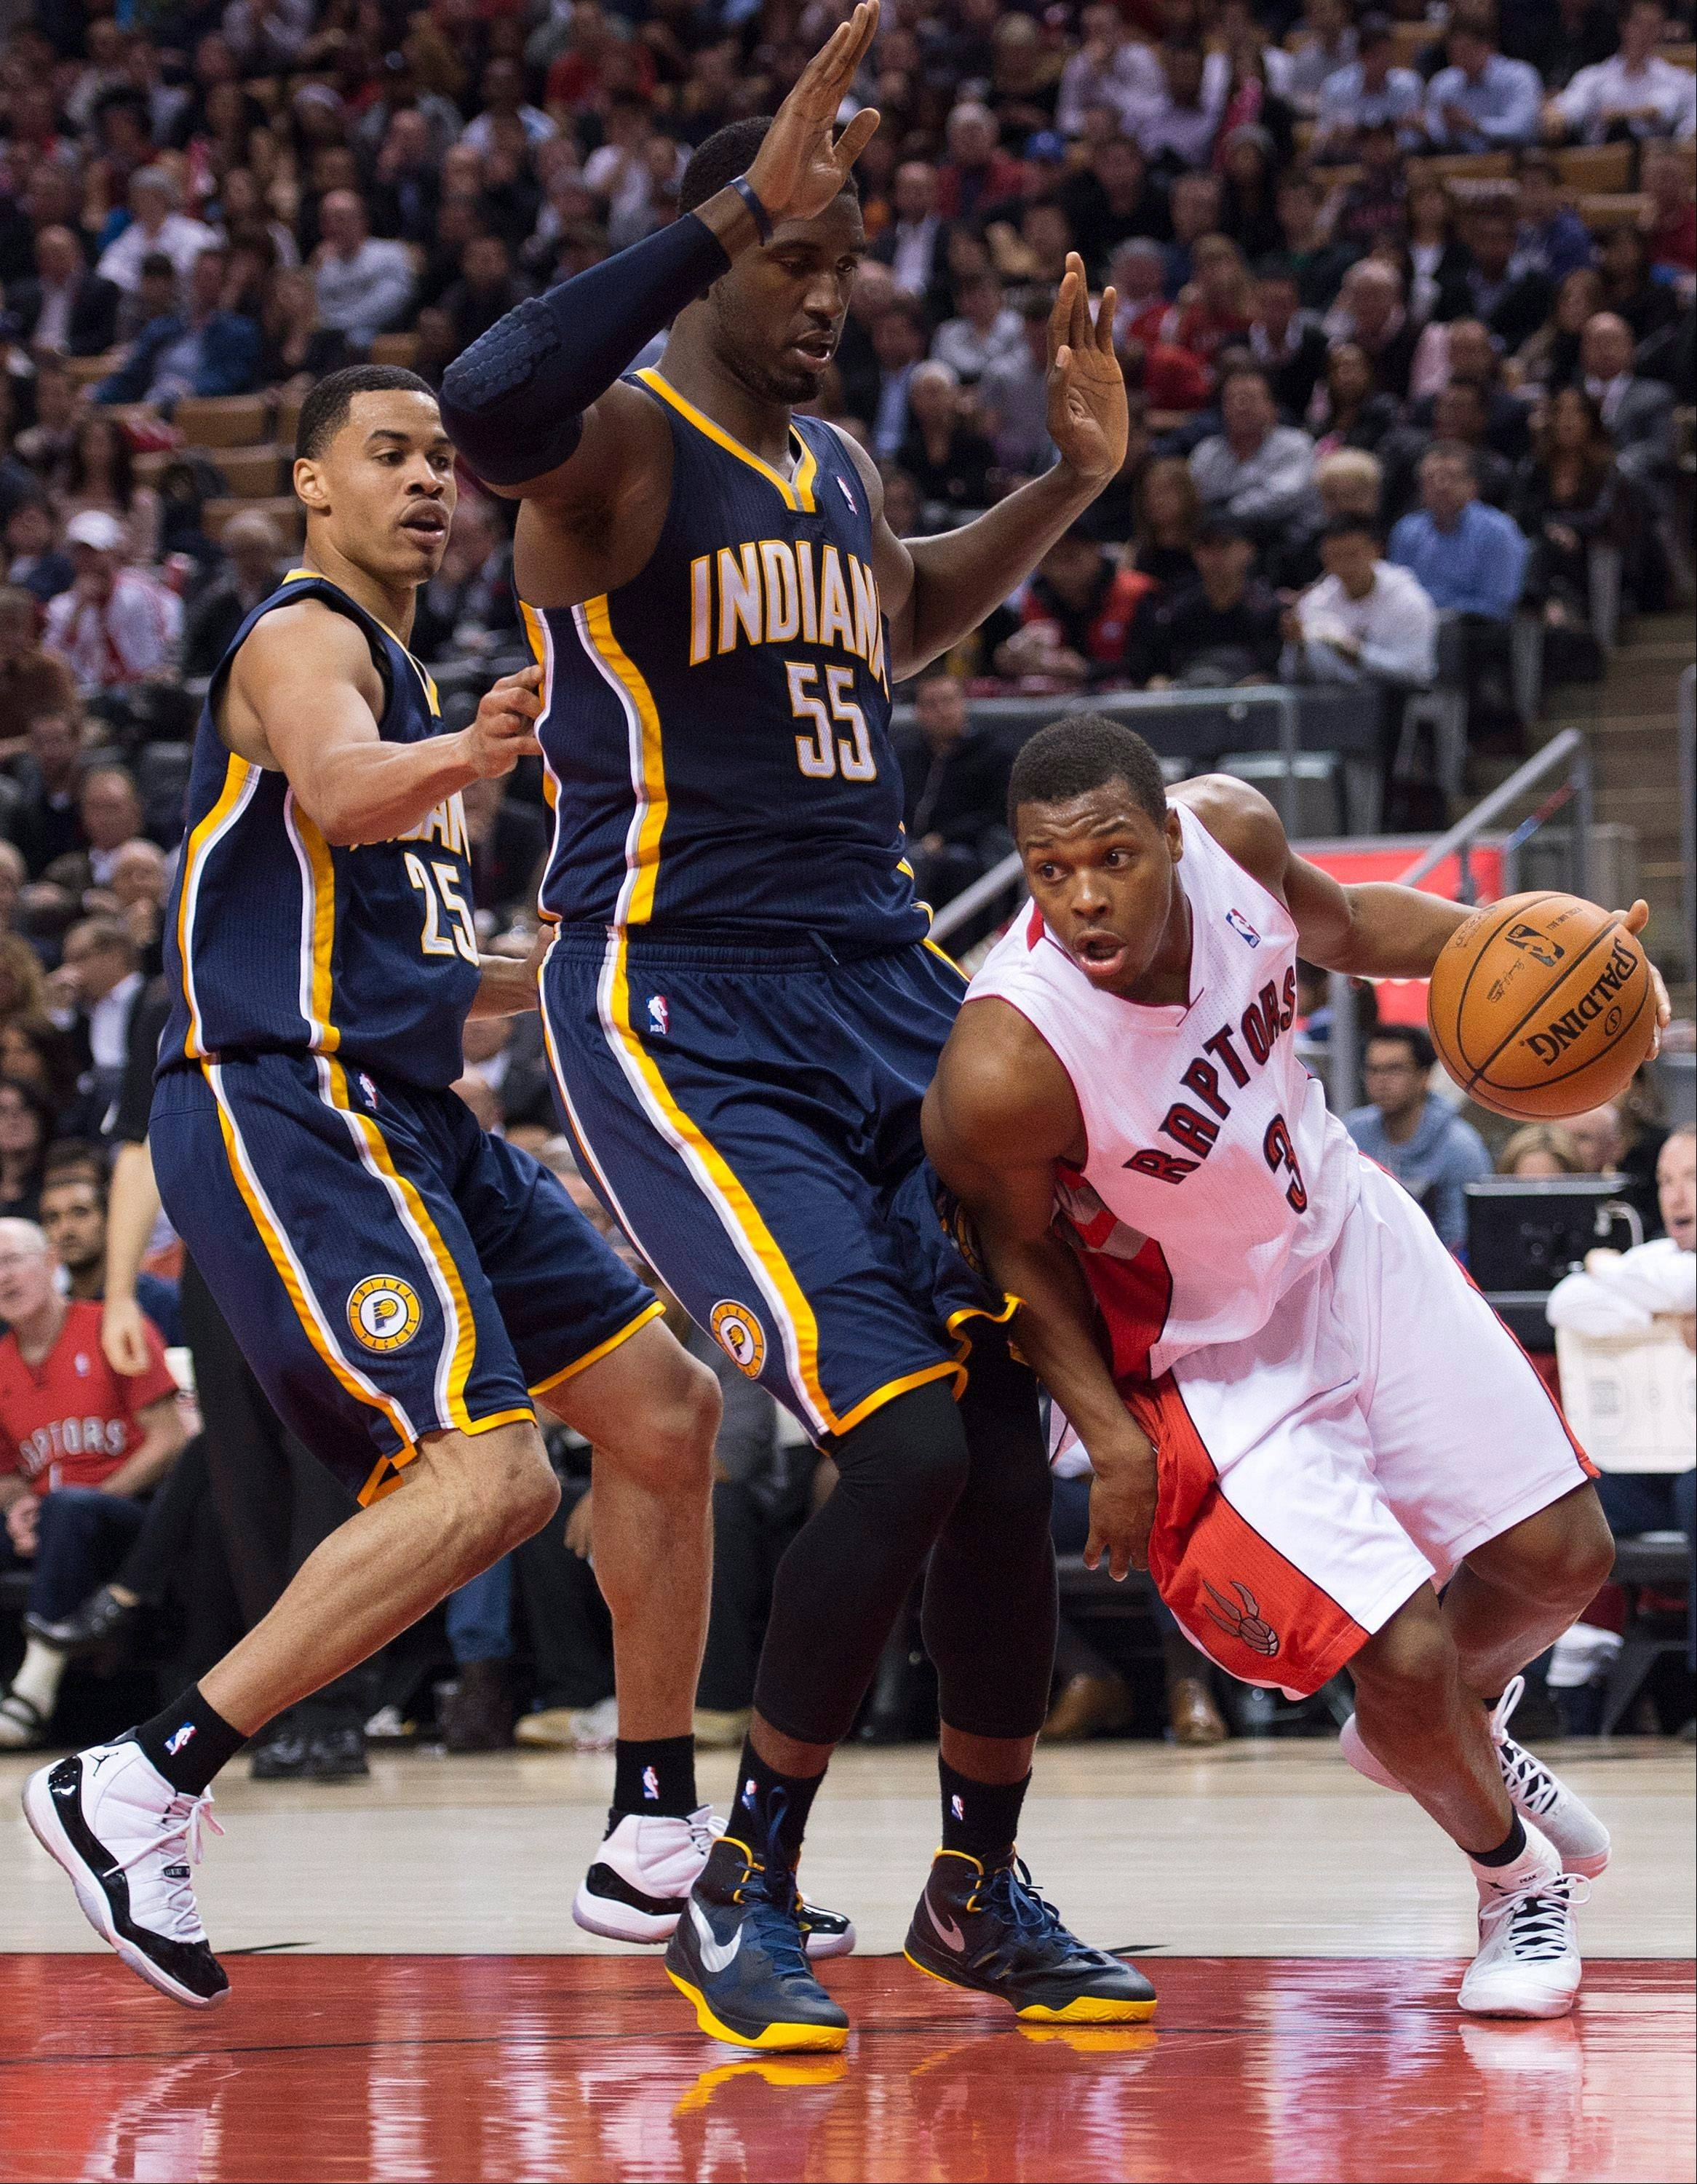 Toronto Raptors guard Kyle Lowry, right, drives to the net past Indiana Pacers forward Roy Hibbert, center, and Pacers guard Gerald Green, left, Wednesday during first half in Toronto.